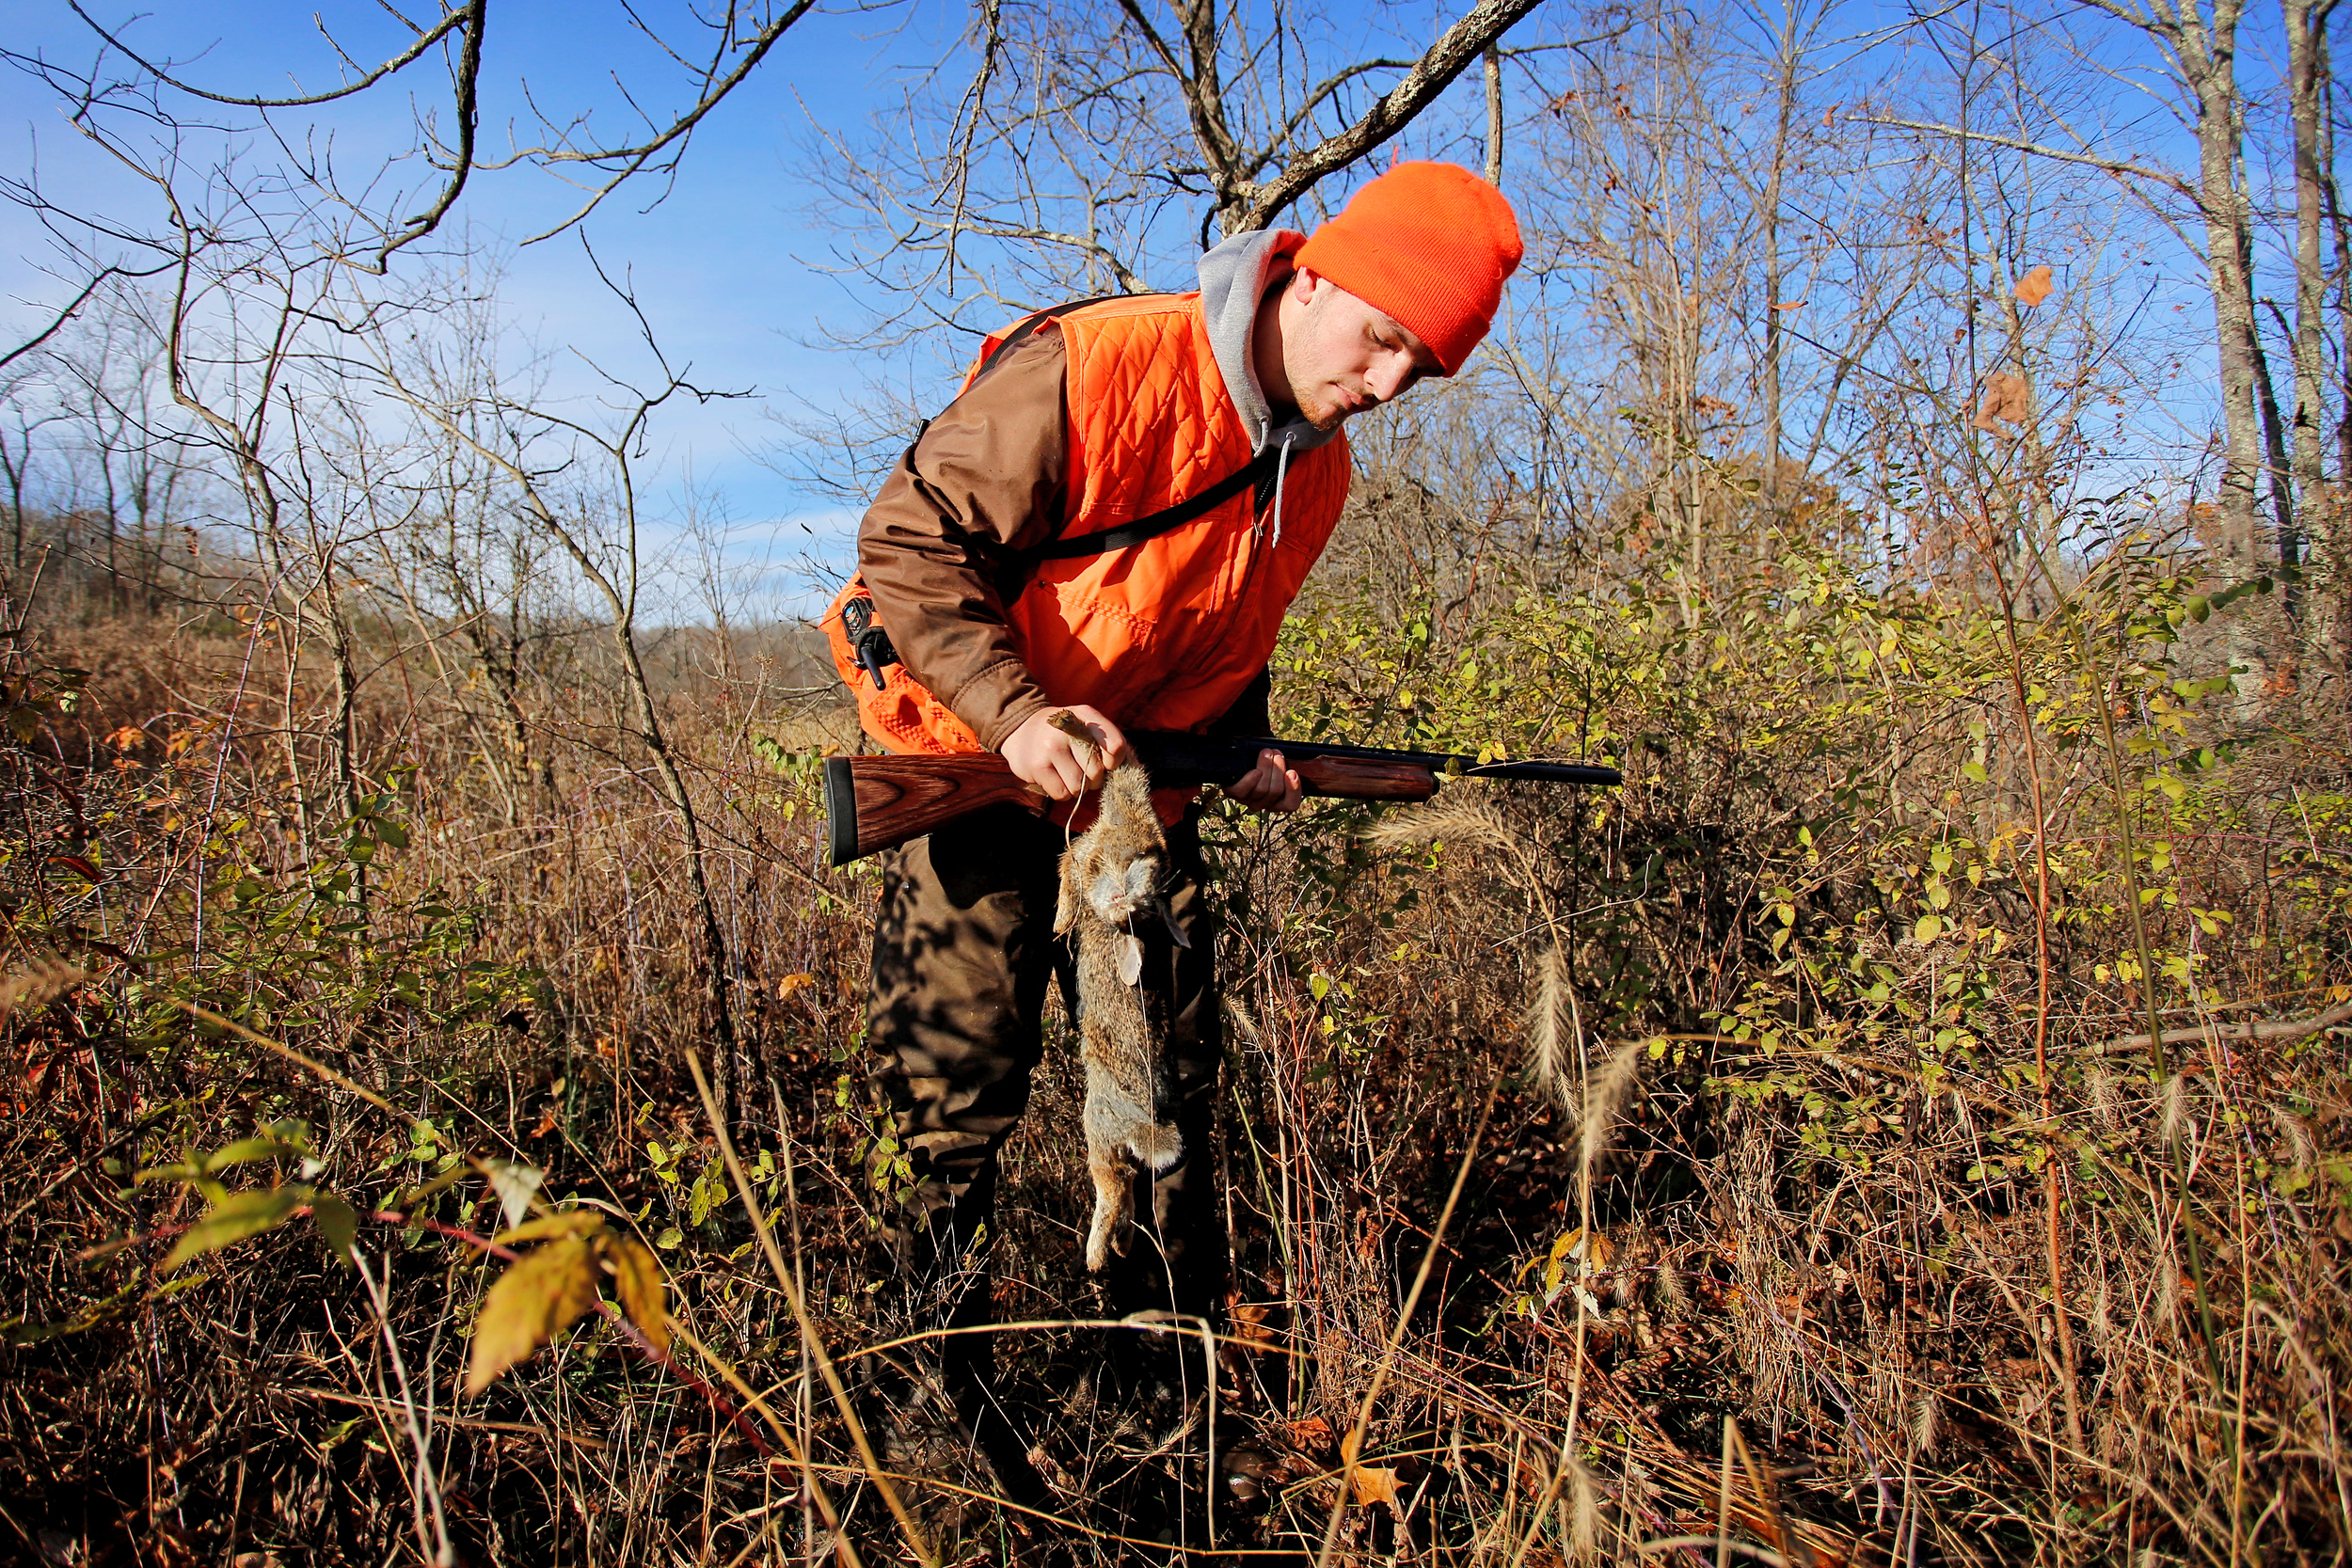 Koons examines a rabbit he shot while hunting. It was the only rabbit he shot all day.